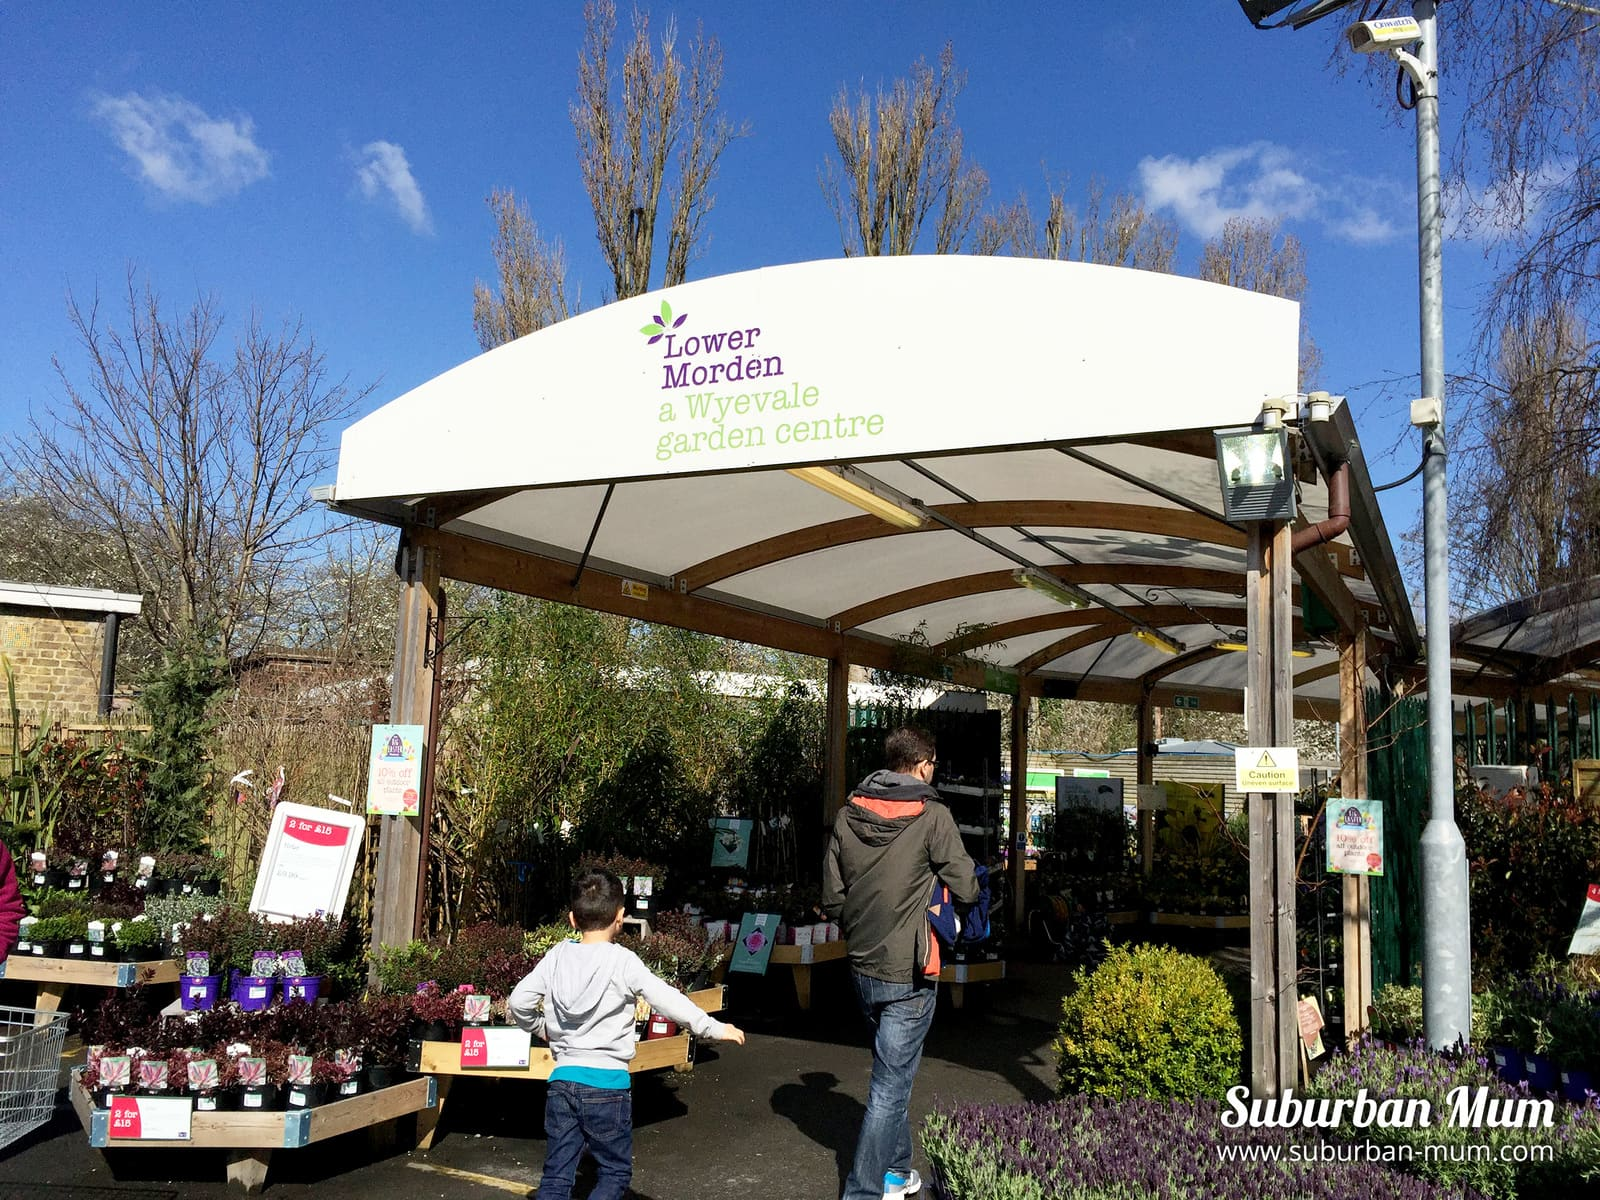 Wyevale Garden Centre, Lower Morden